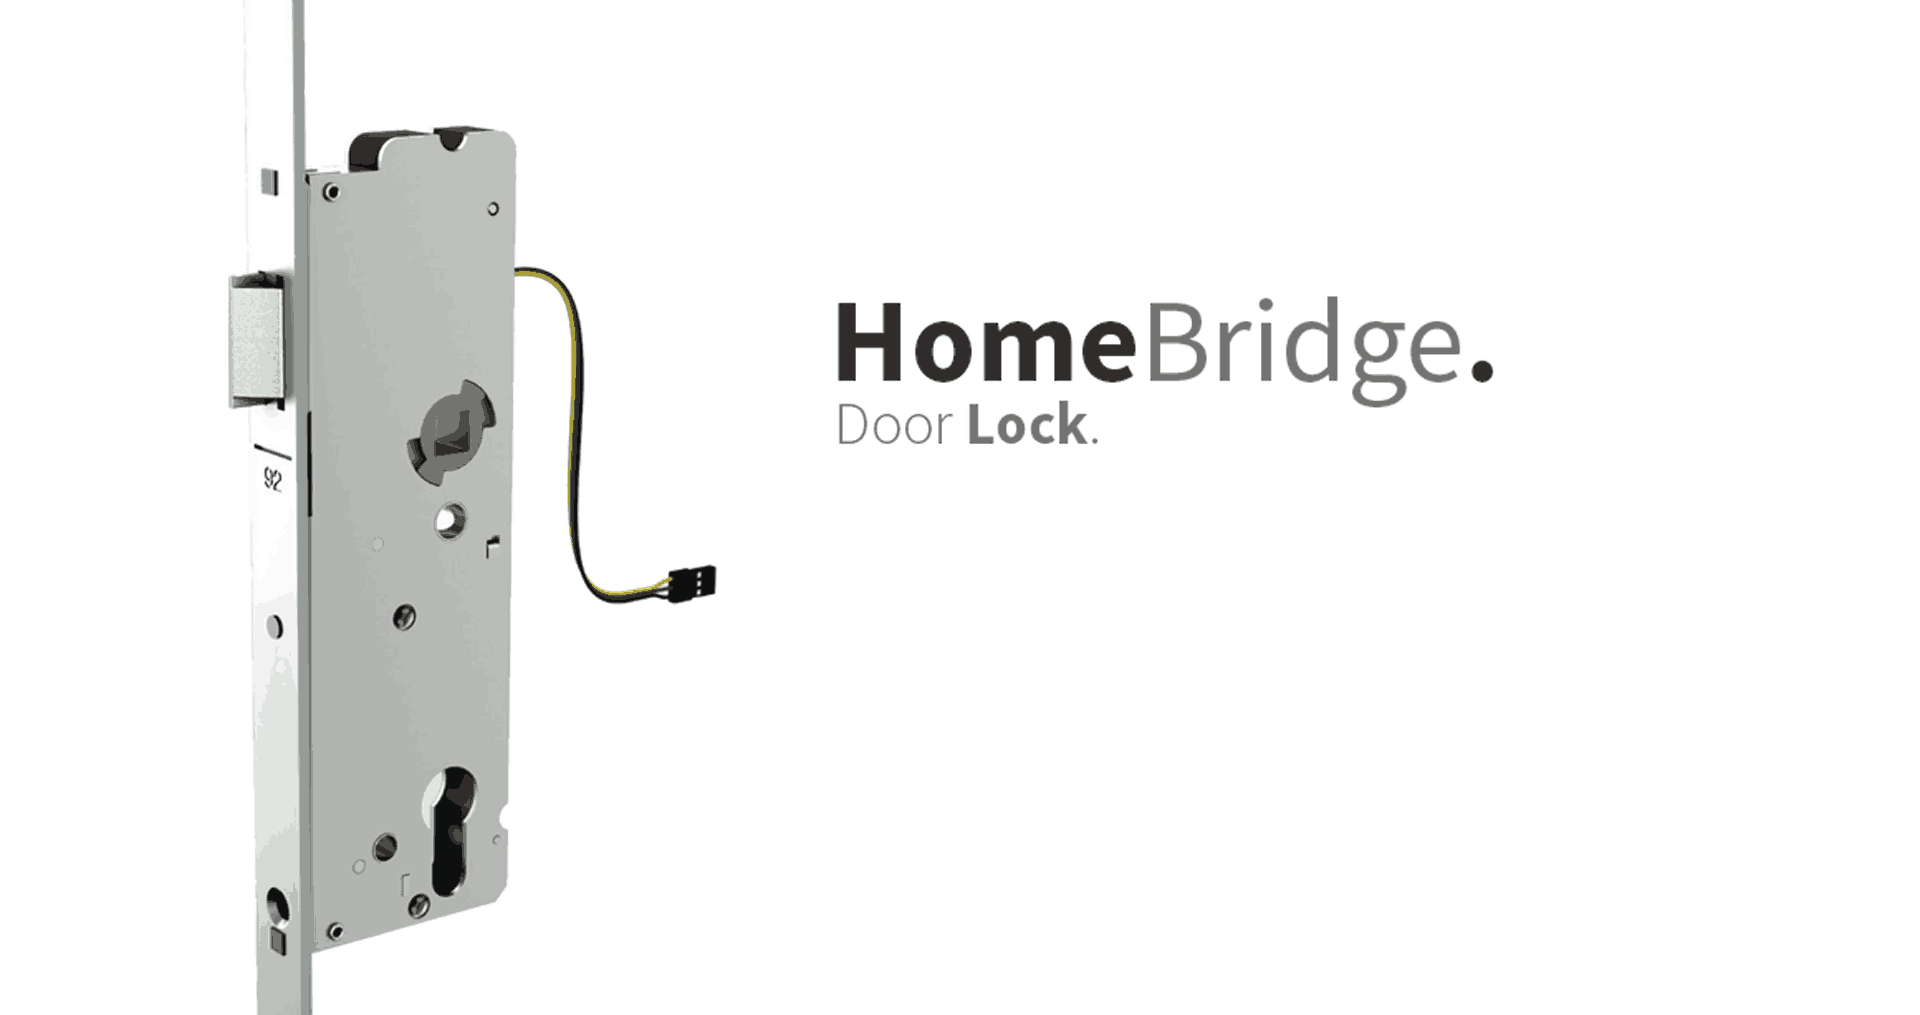 HomeBridge – Door Lock